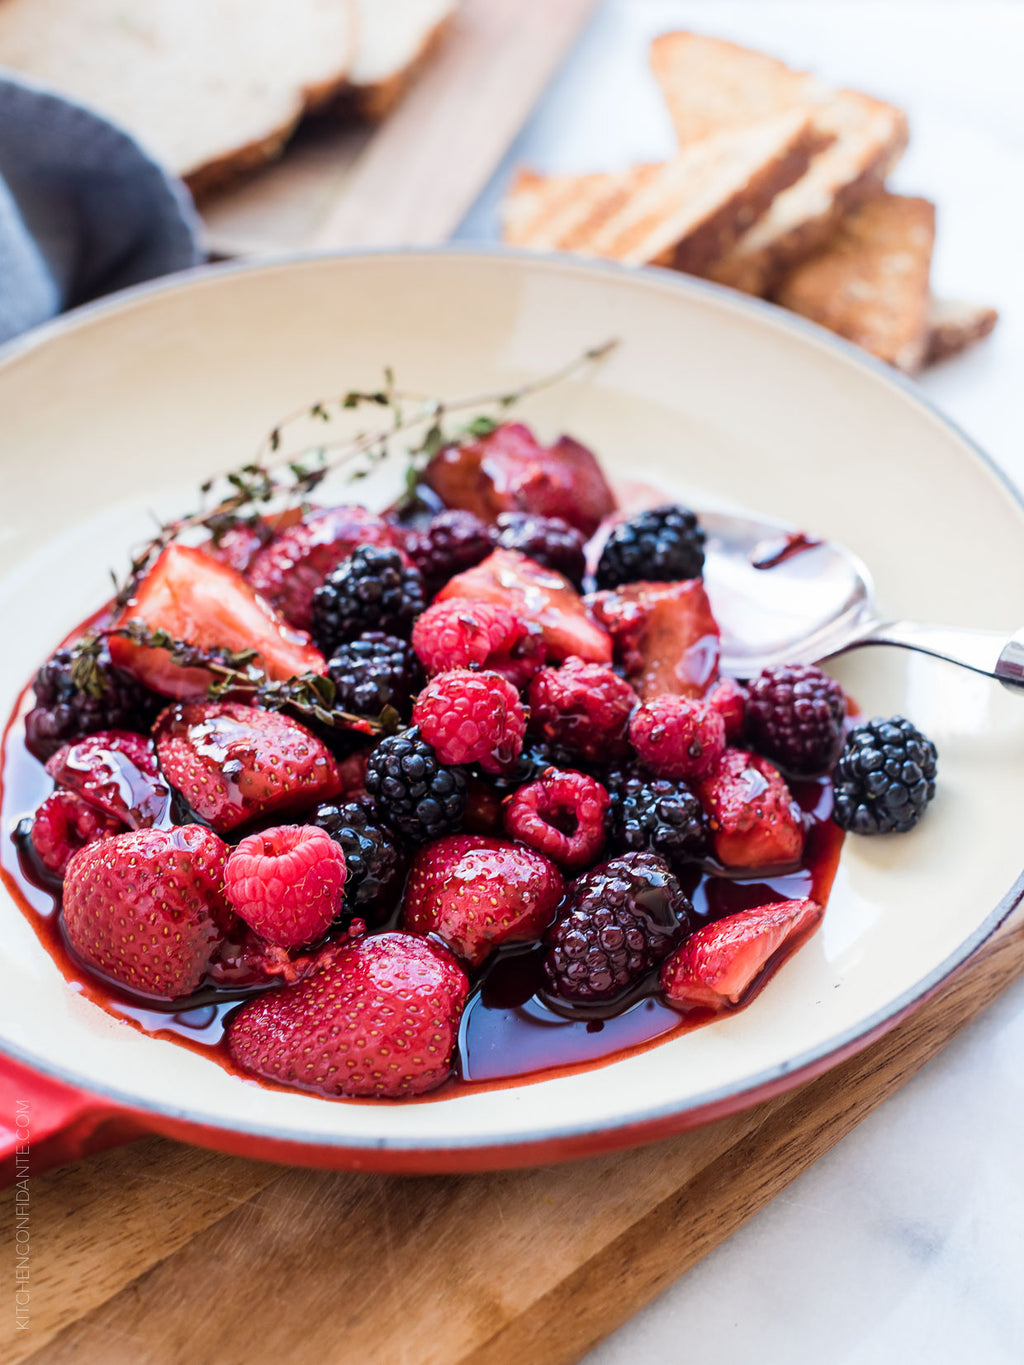 How To Make Berry Balsamic Vinaigrette